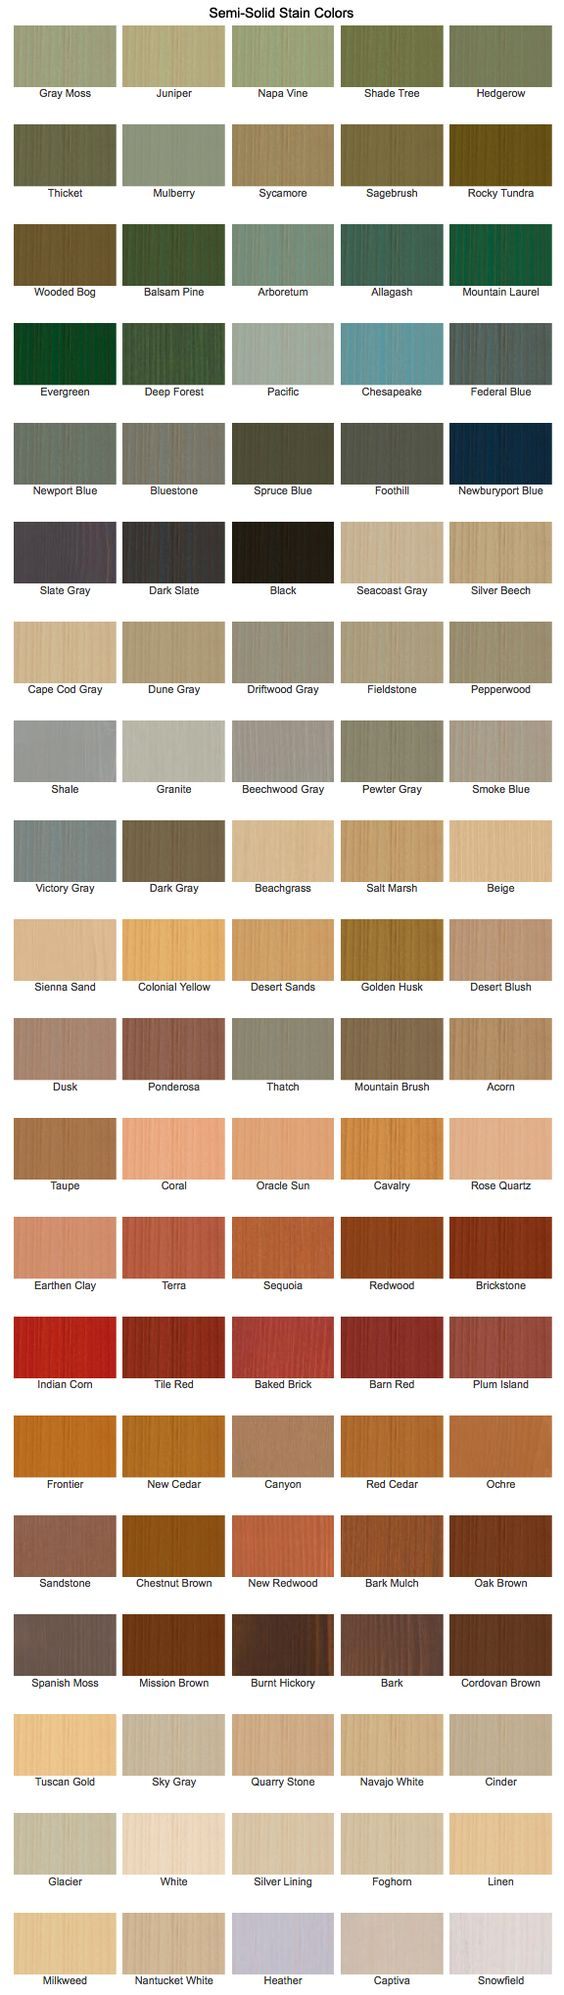 Maxum Stain Color Chart